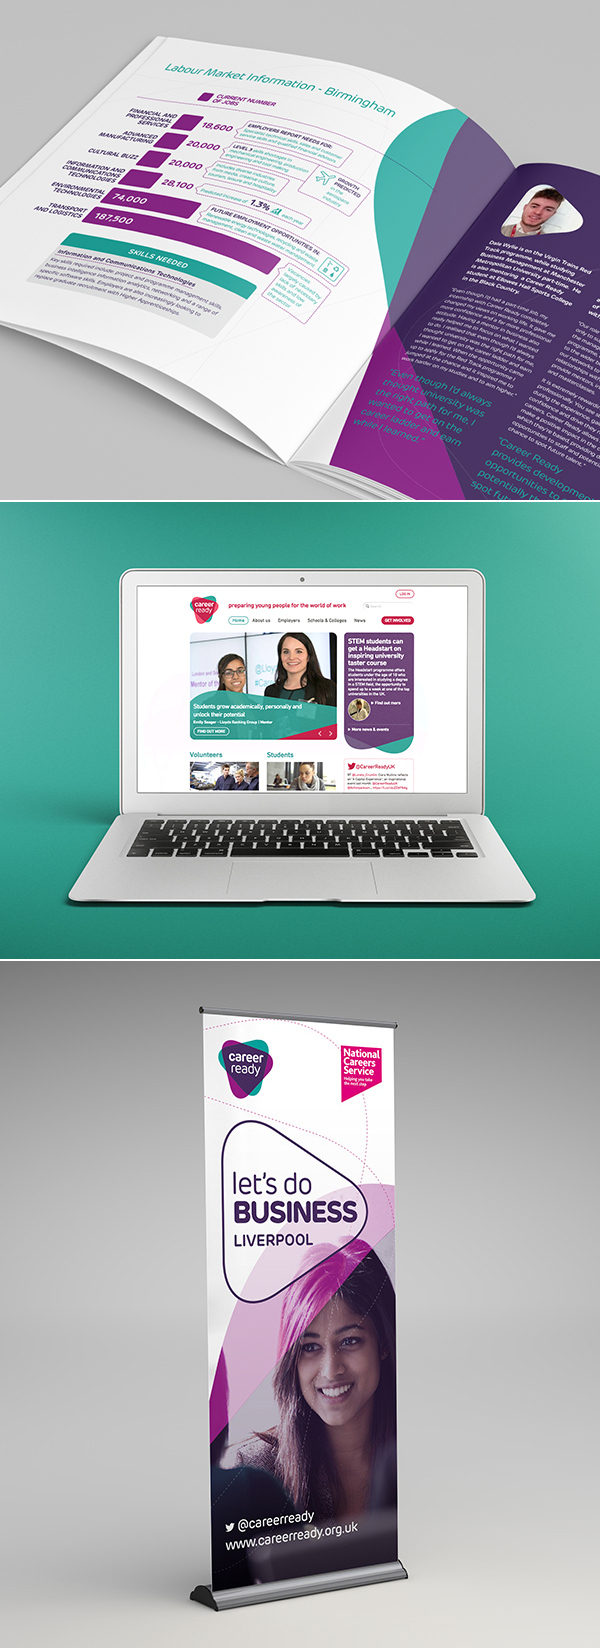 Career Ready rebrand shown on impact report, website and banner graphics